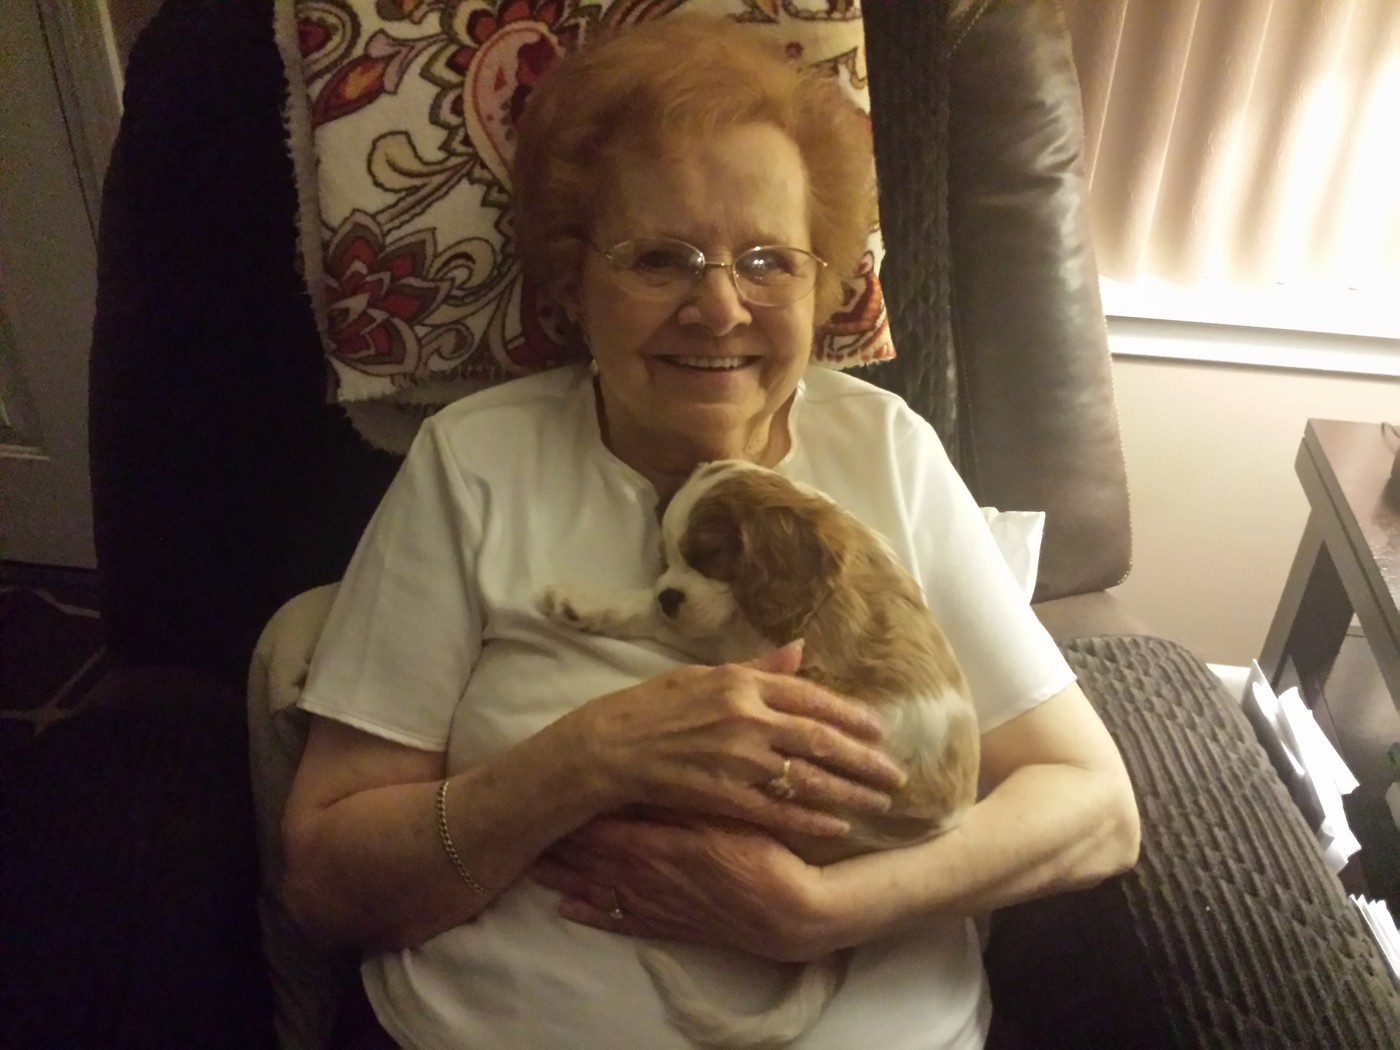 Mom making a friend on Thanksgiving